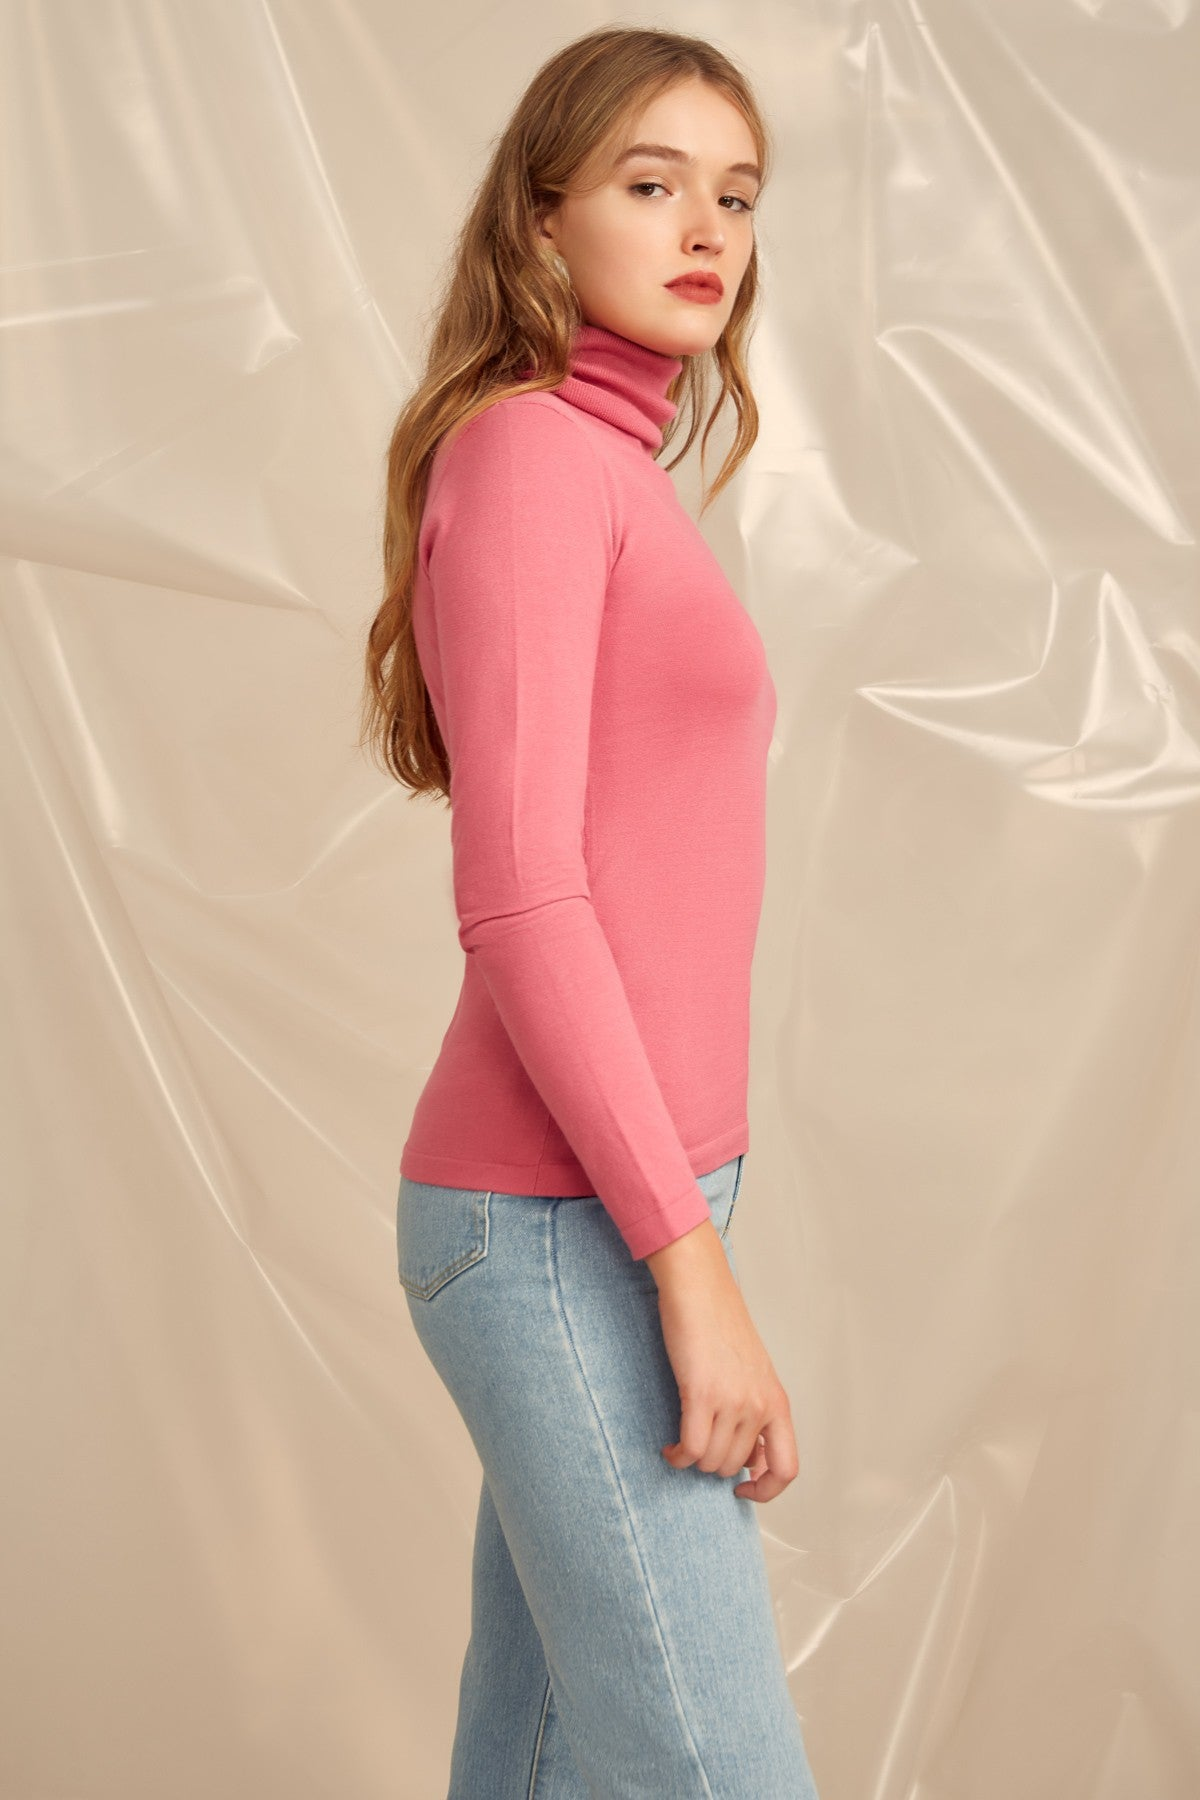 NEW RULES KNIT TOP pink